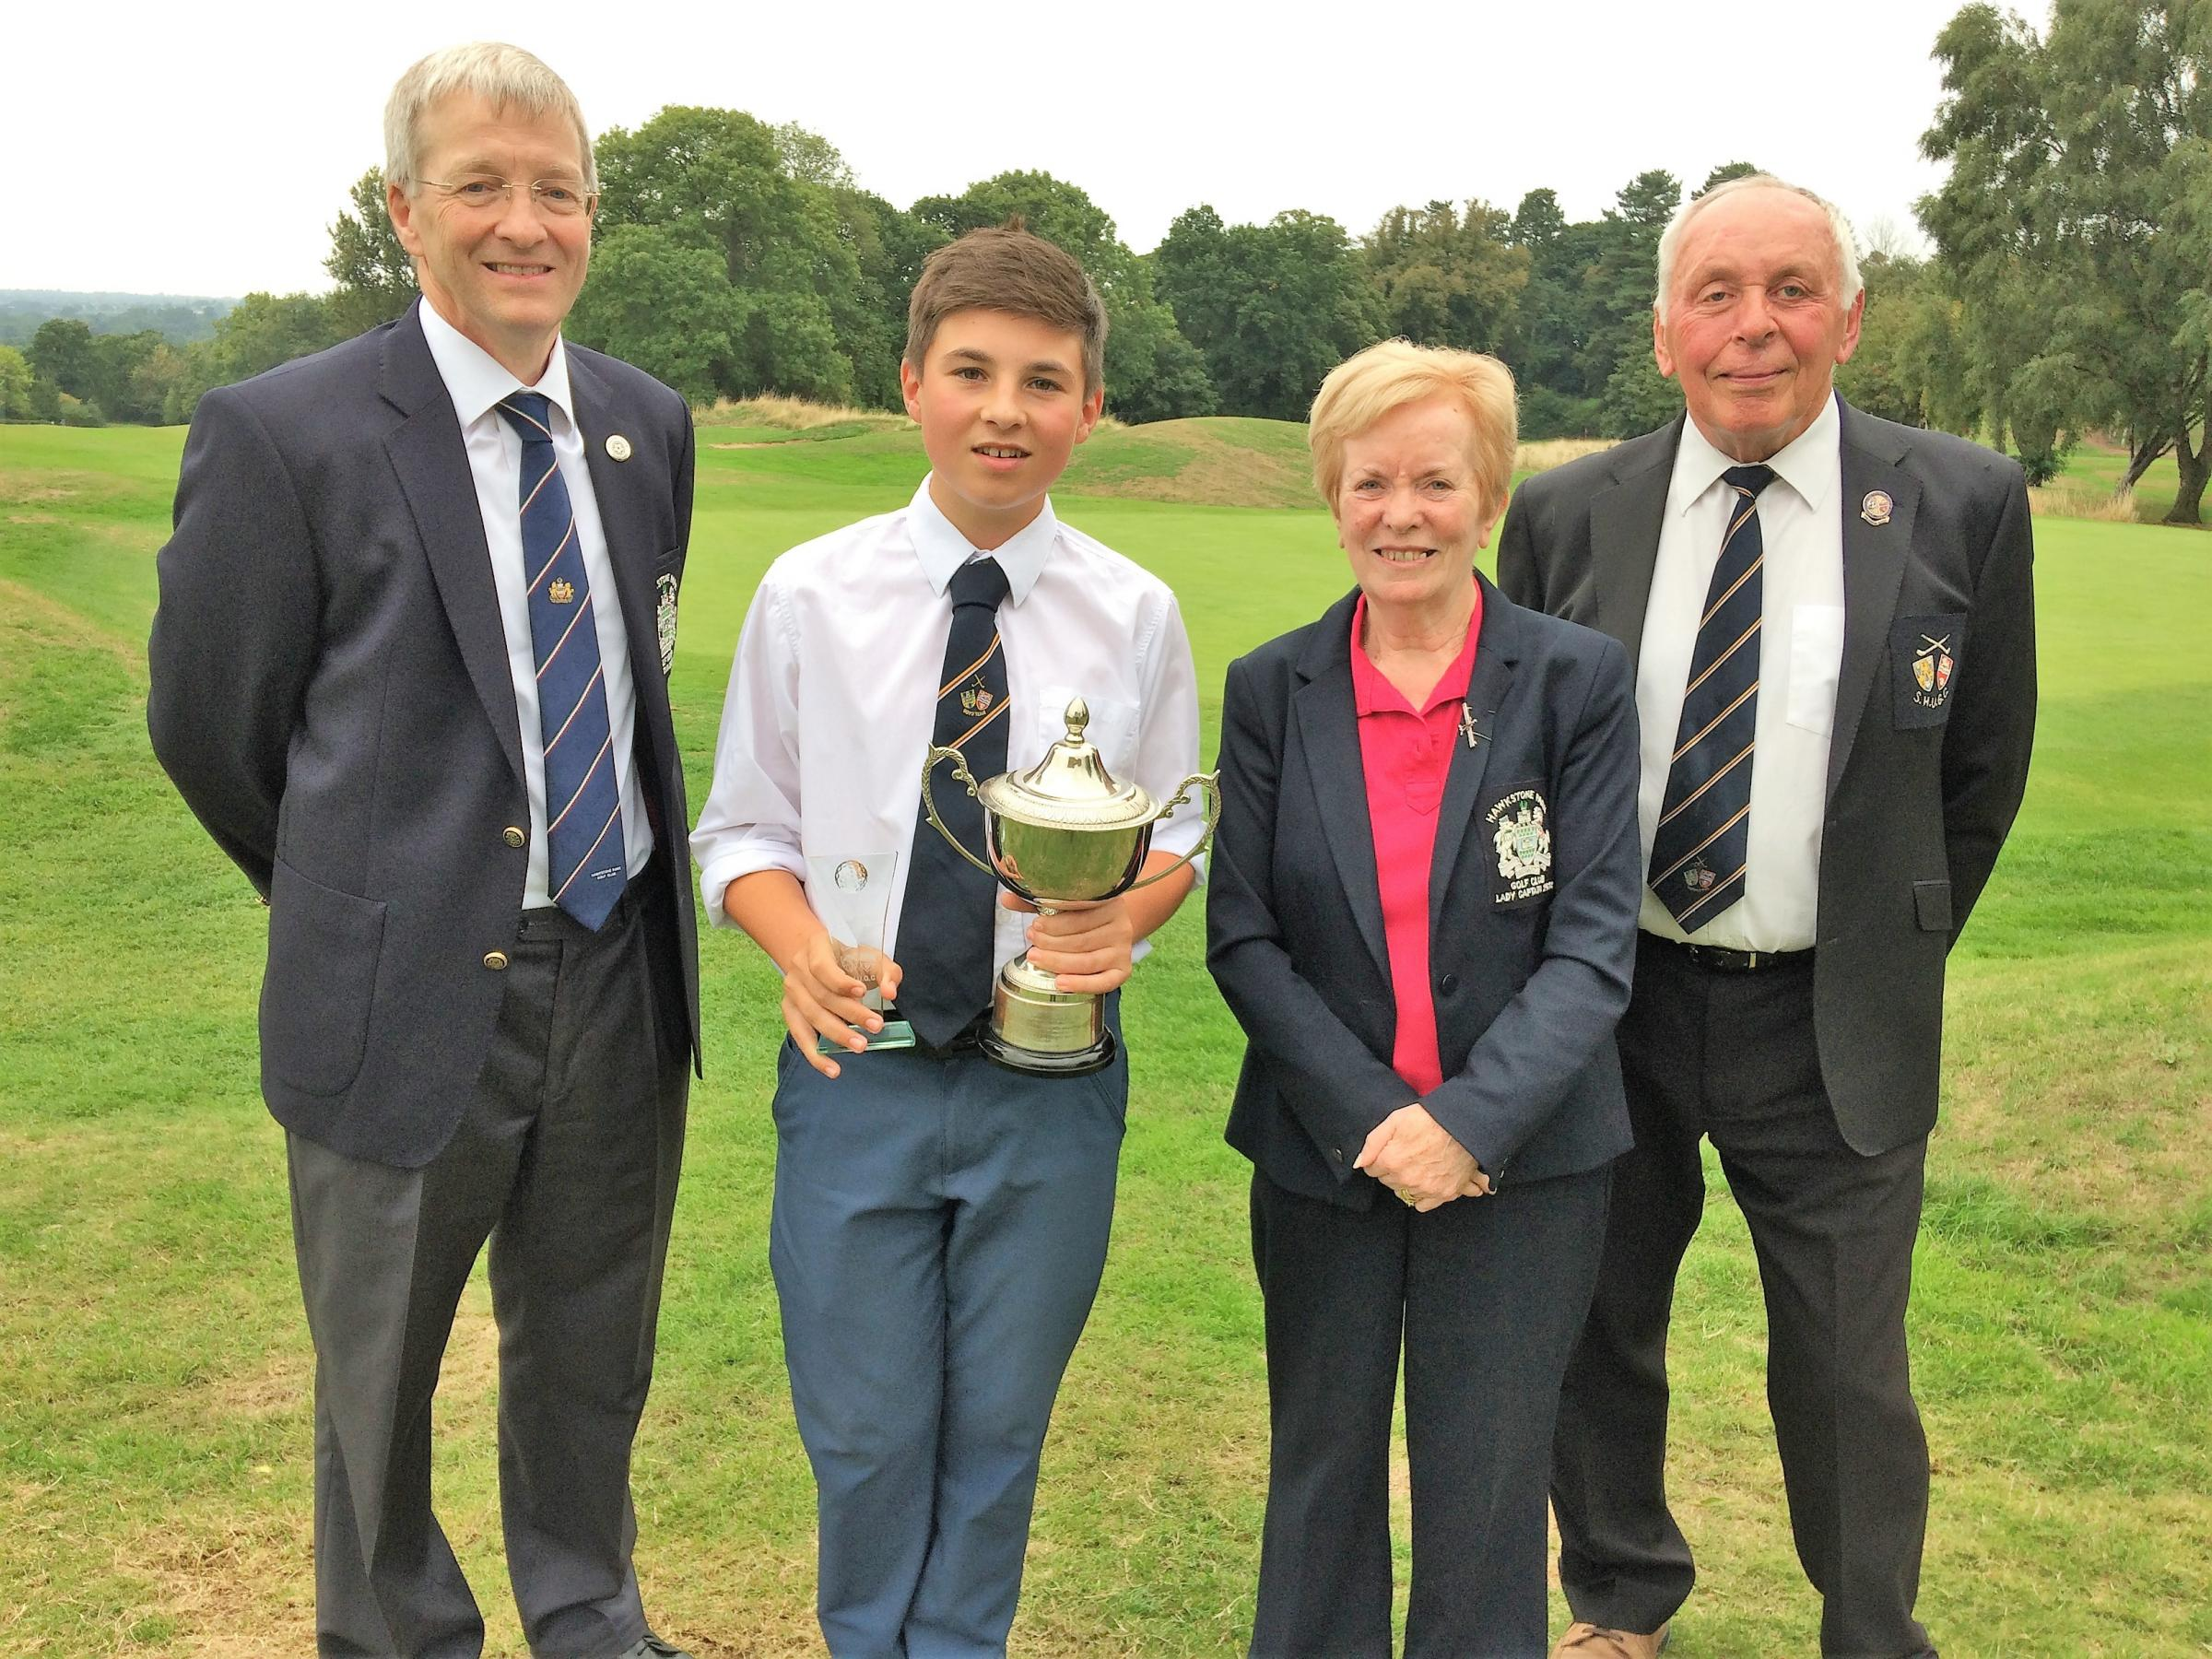 Jack Helme of The Grove Golf Club collects the winner's trophy